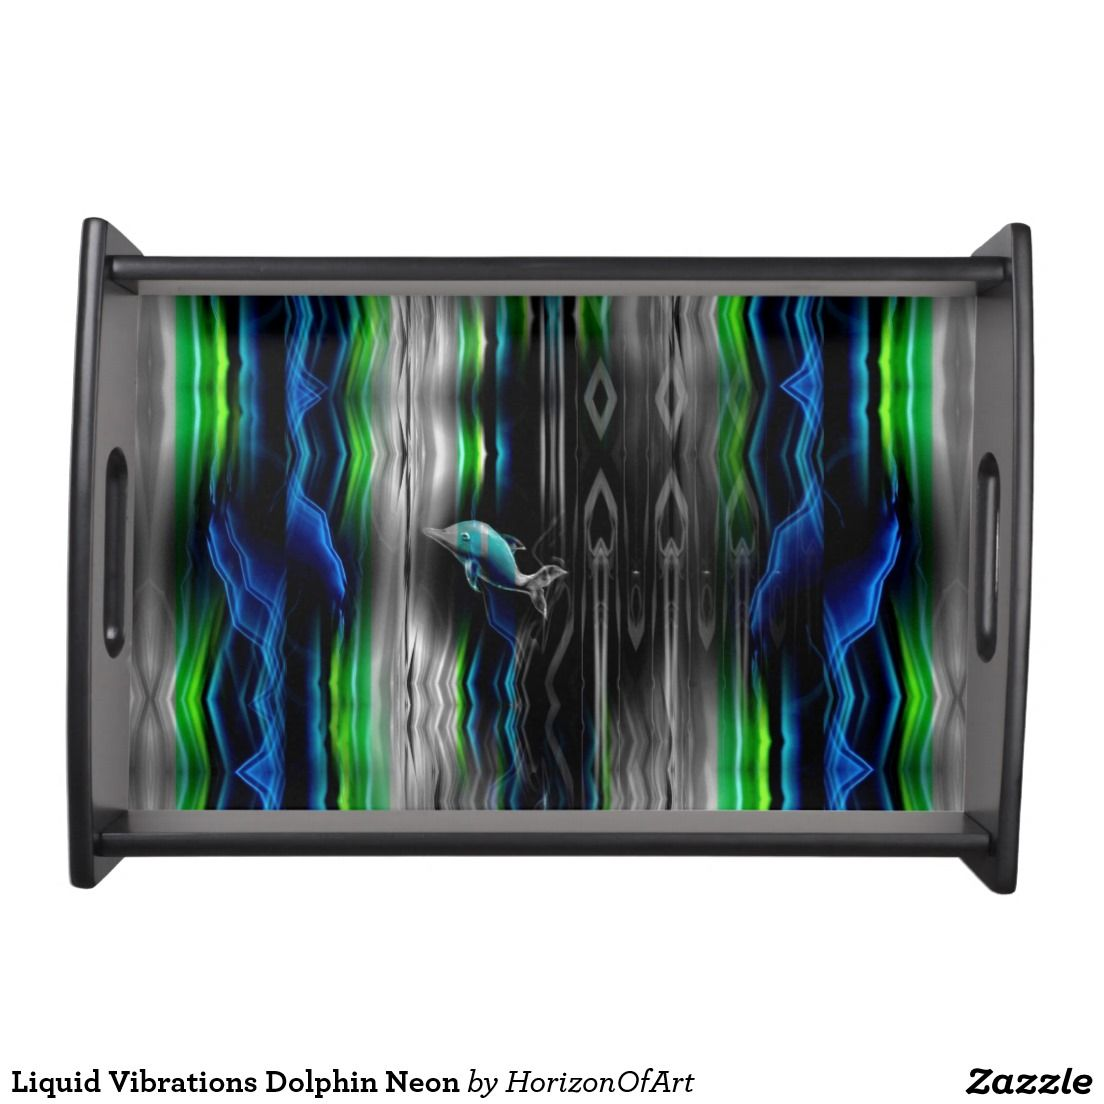 Liquid Vibrations Dolphin Neon Serving Tray